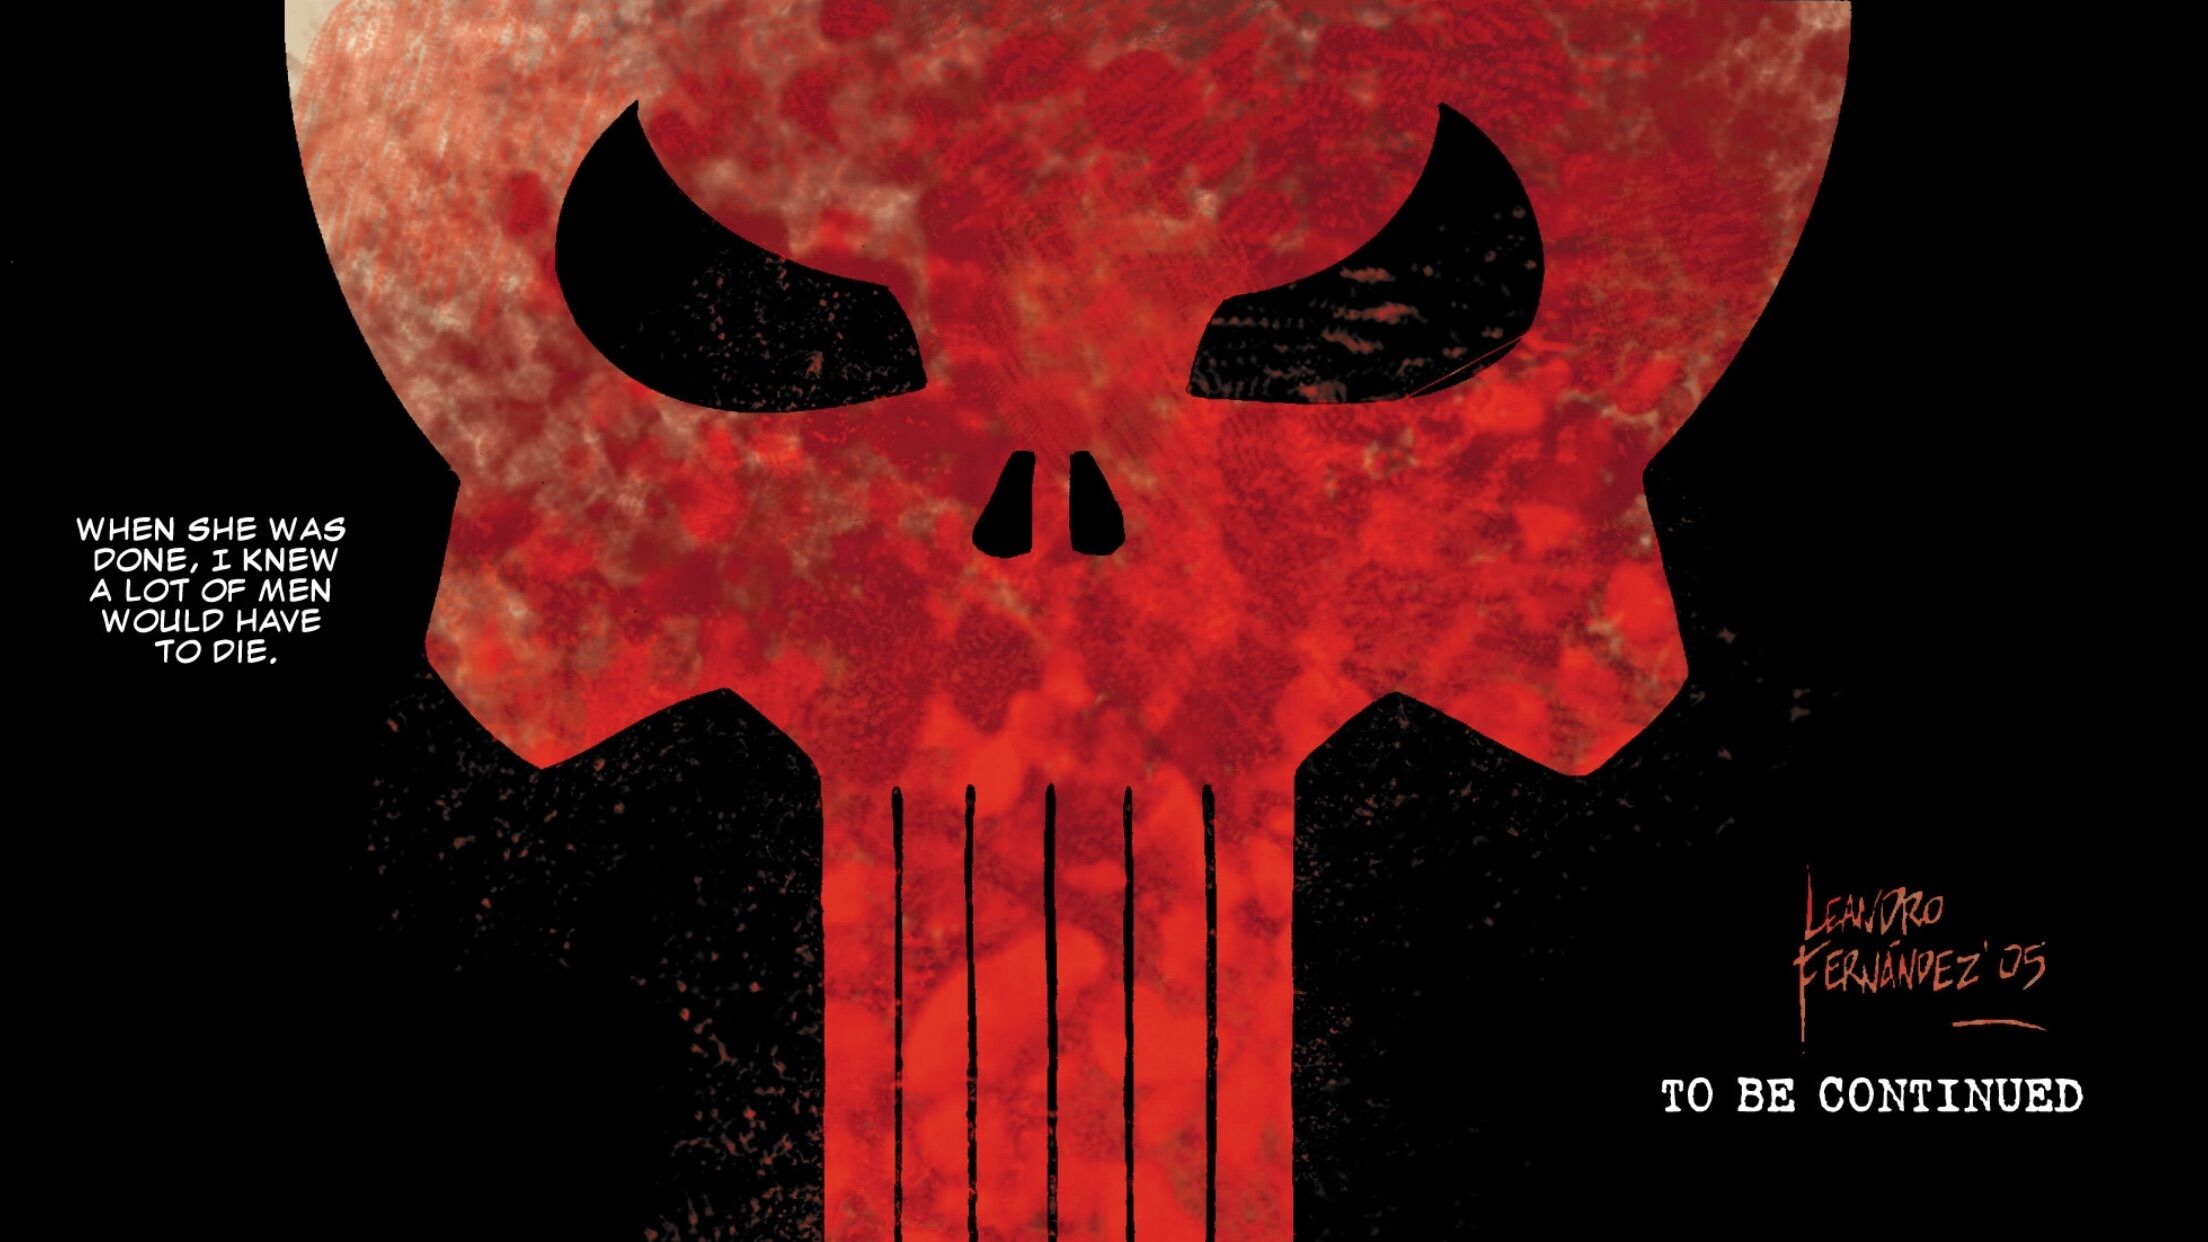 The Punisher kills a major Marvel villain